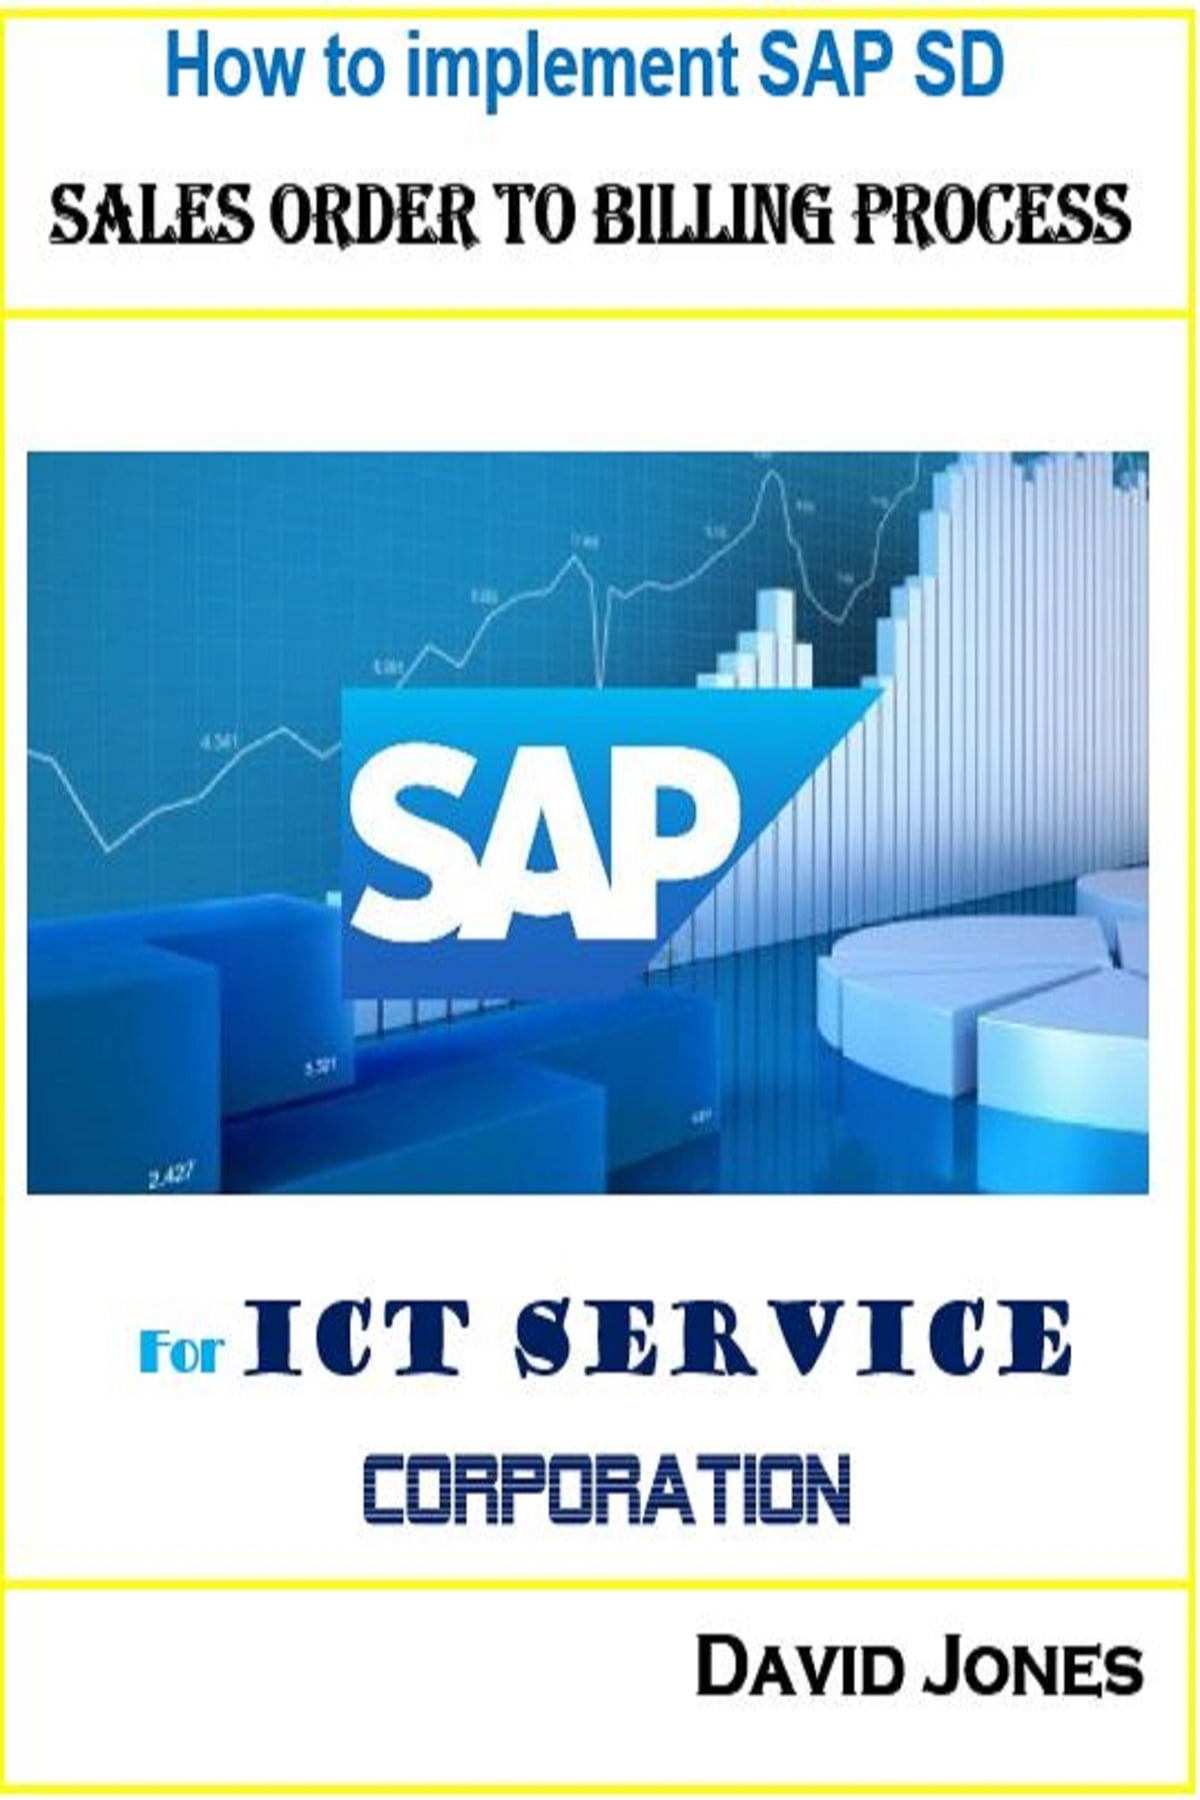 hight resolution of how to implement sap sd sales order to billing process for ict service corporation ebook by david jones 9781370413386 rakuten kobo